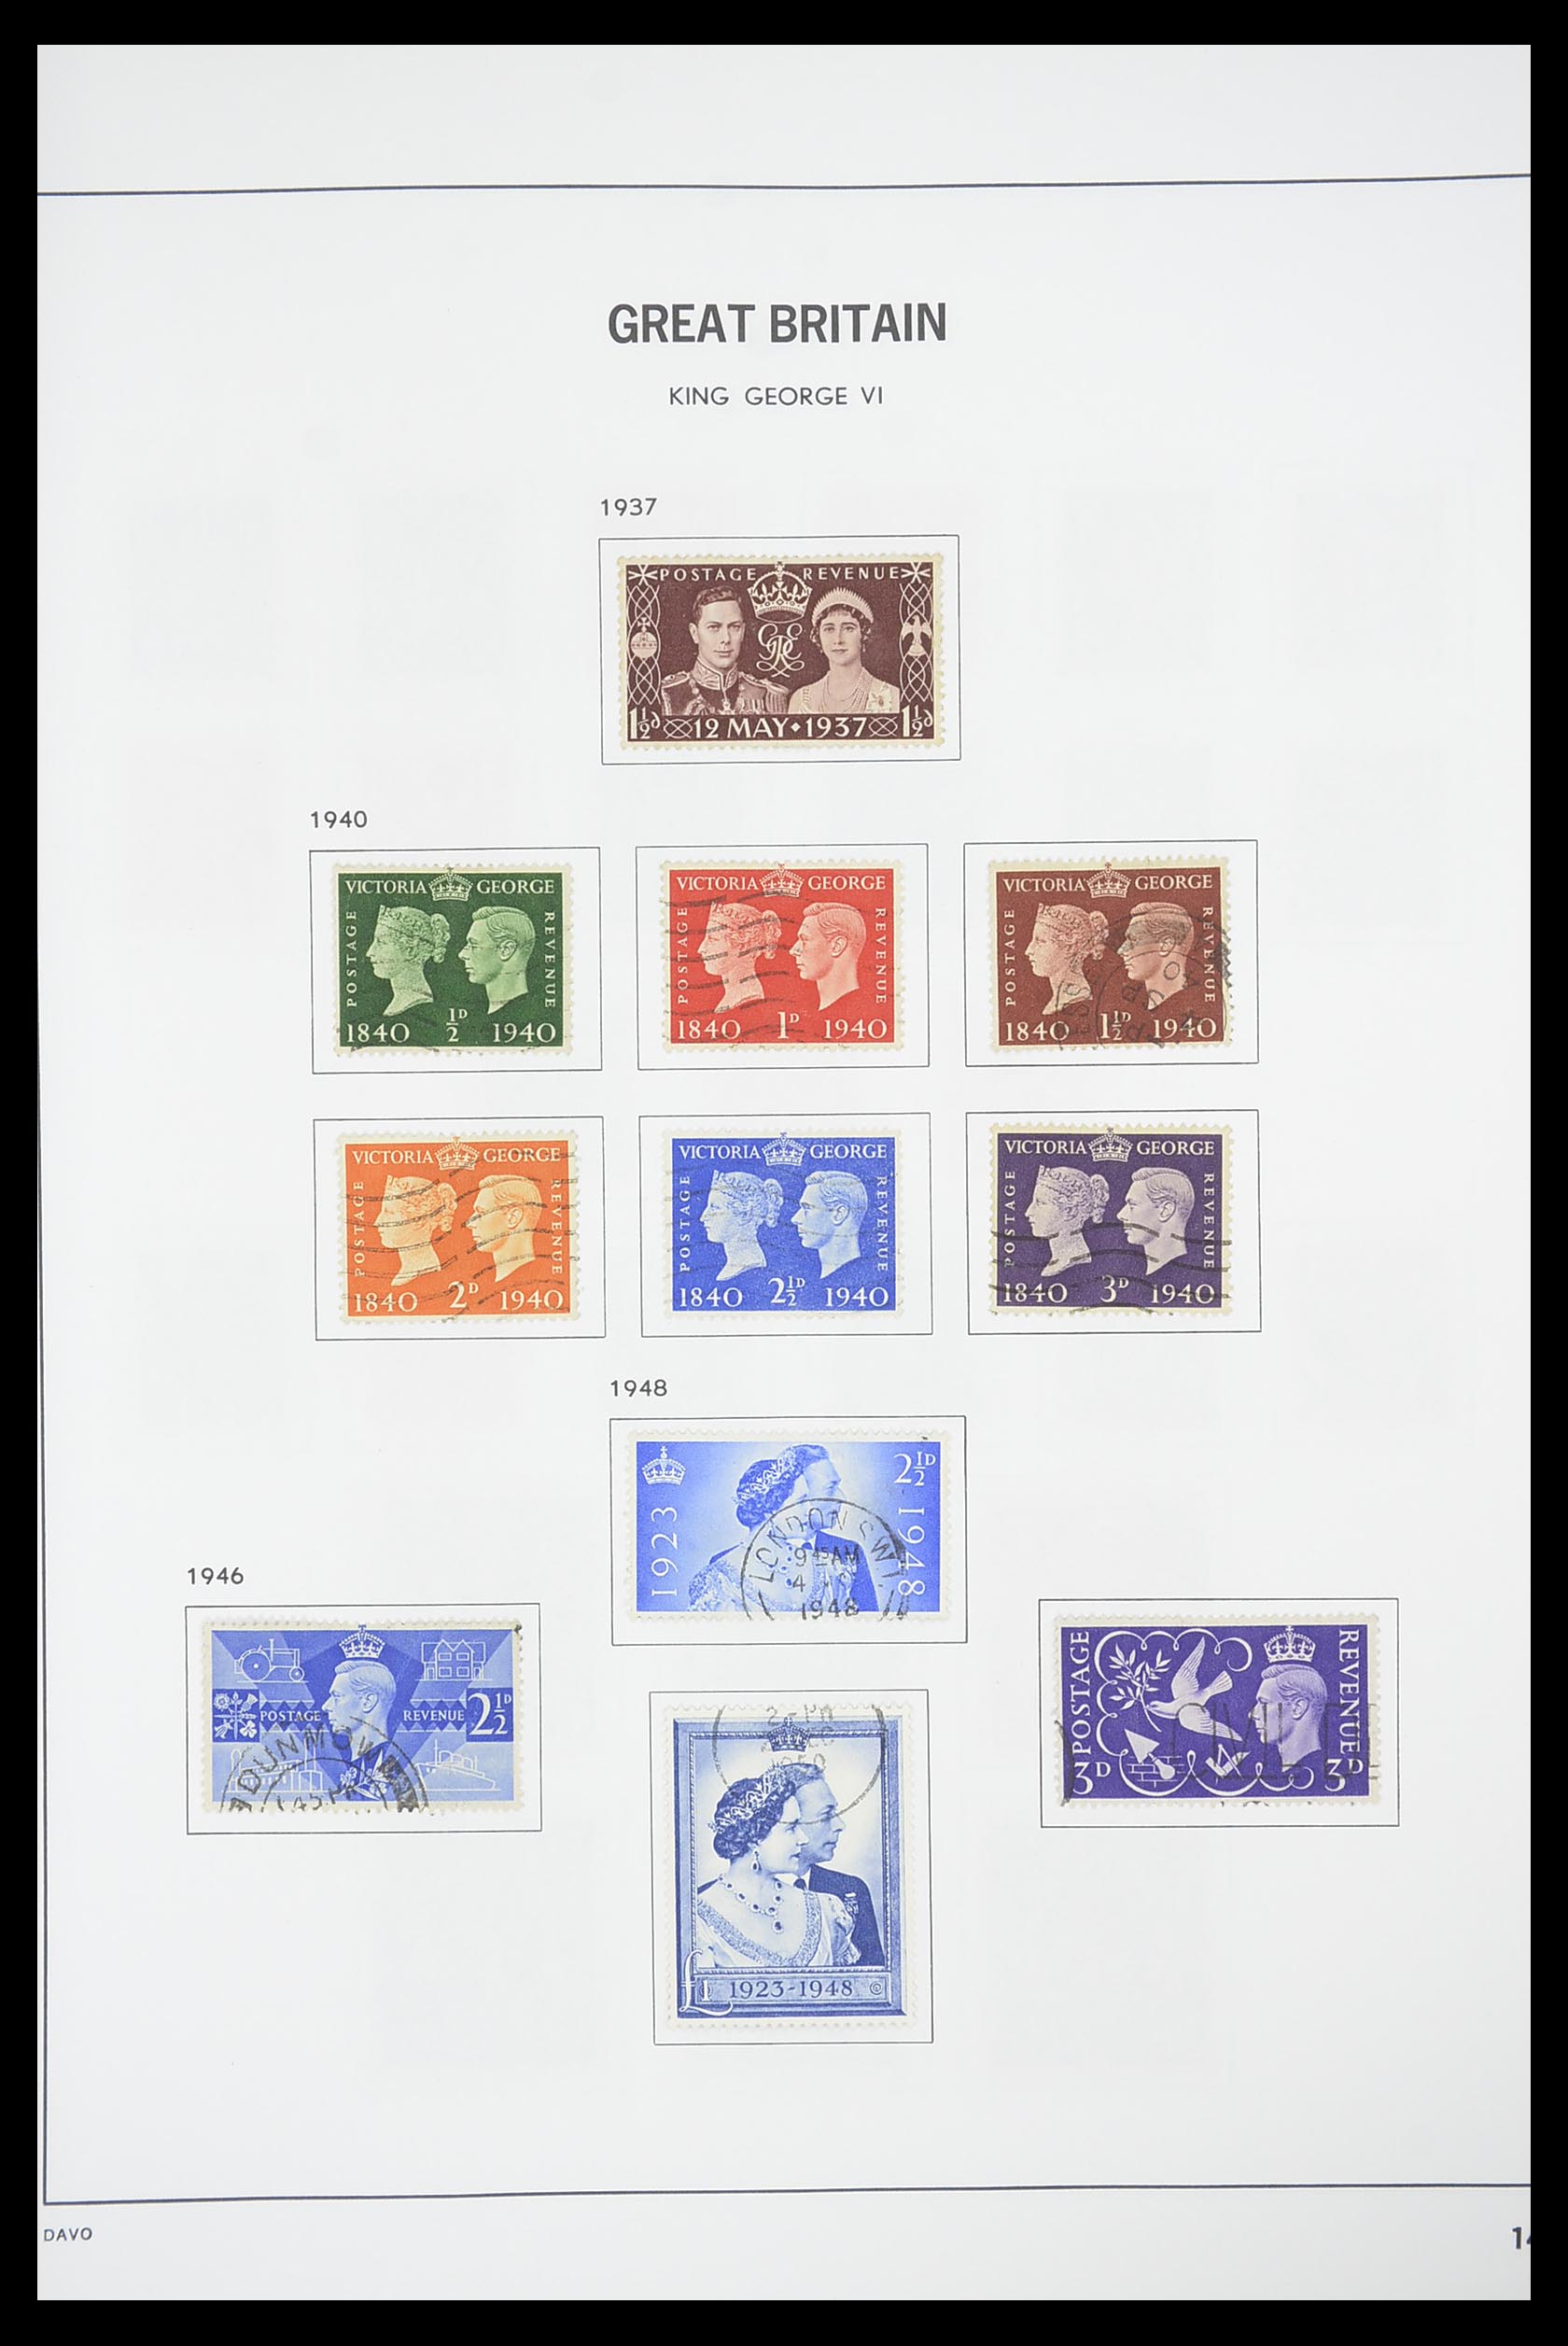 33898 013 - Stamp collection 33898 Great Britain 1840-2006.